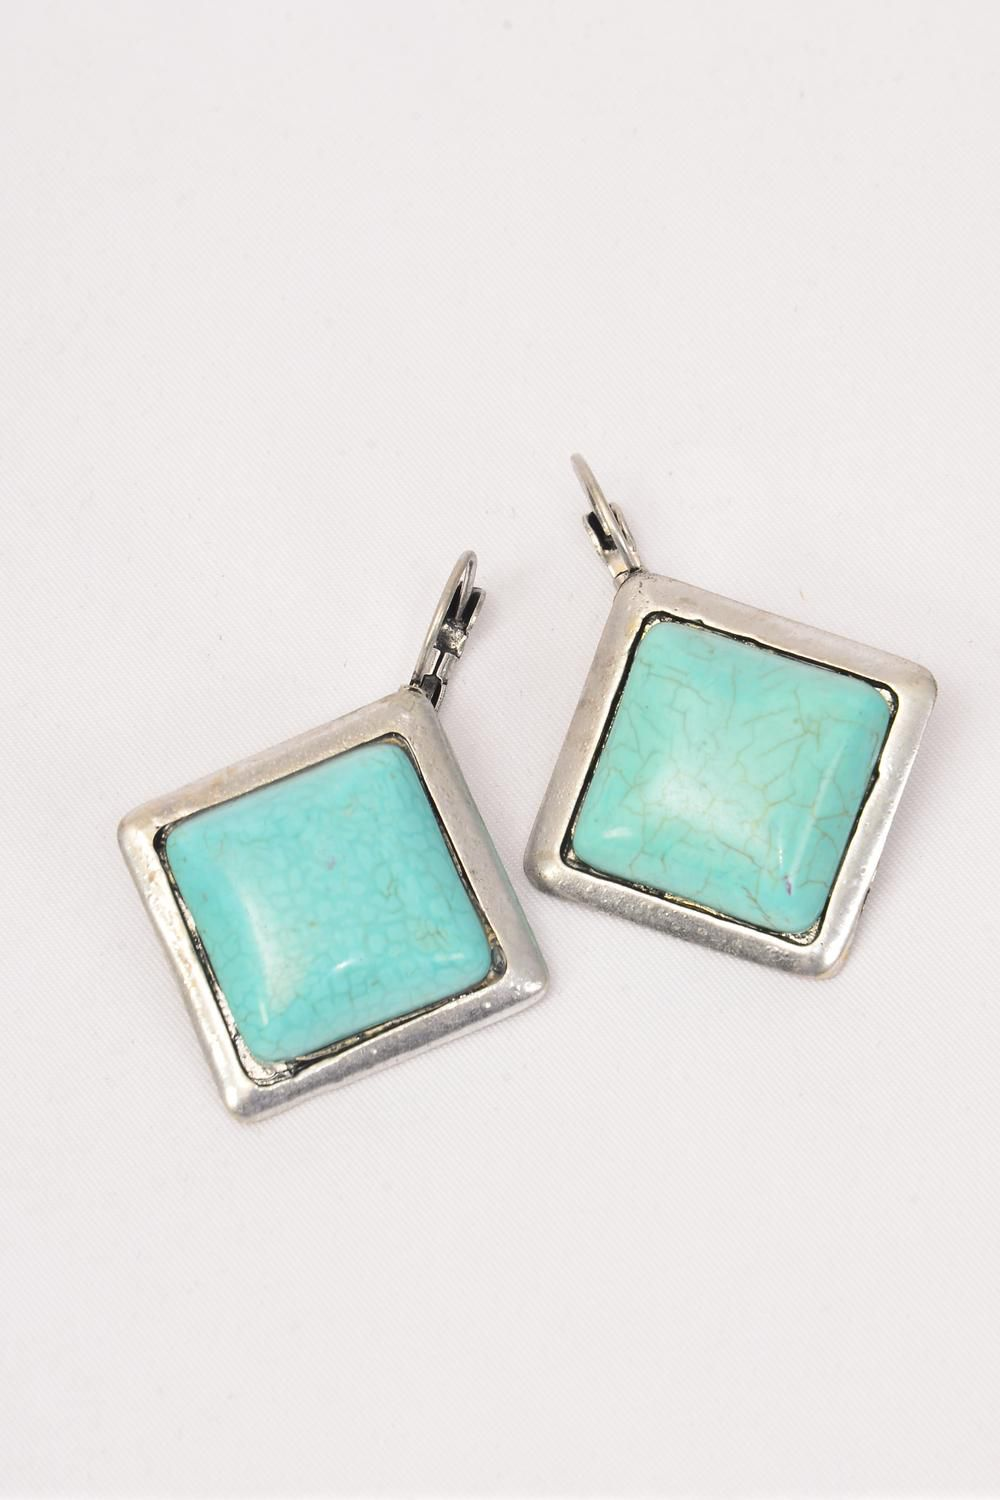 "Earrings Diamond shape Real Semiprecious Stones/PC **French Post** Size-1"" Wide,choose Green or Blue Turquoise,Black Velvet Display Card & OPP bag & UPC Code -"